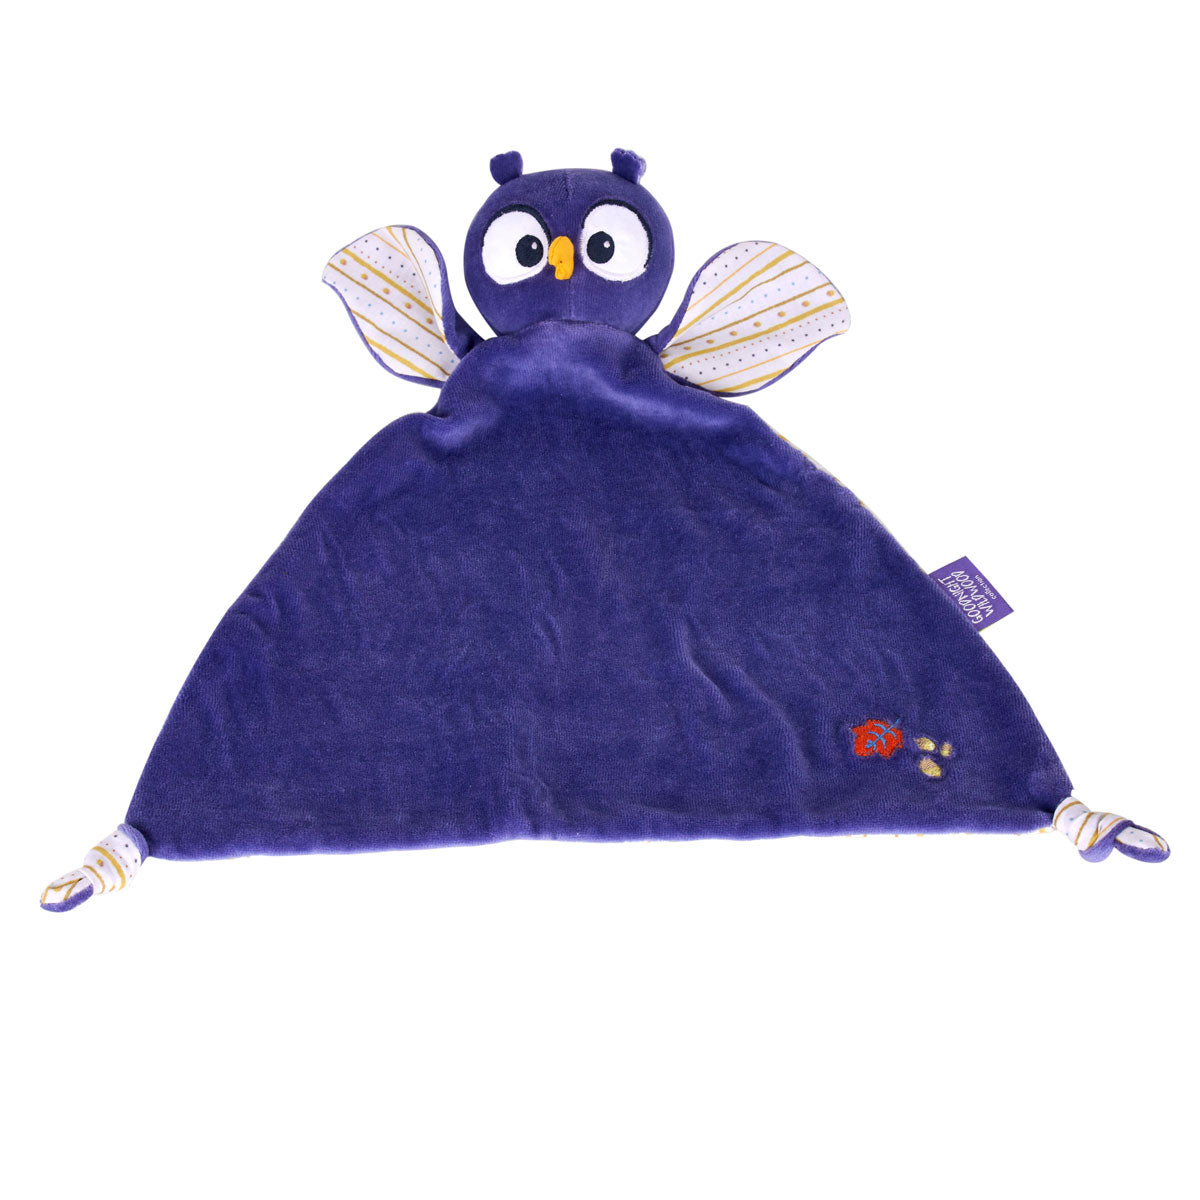 Goodnight Wildwood Owl Comforter